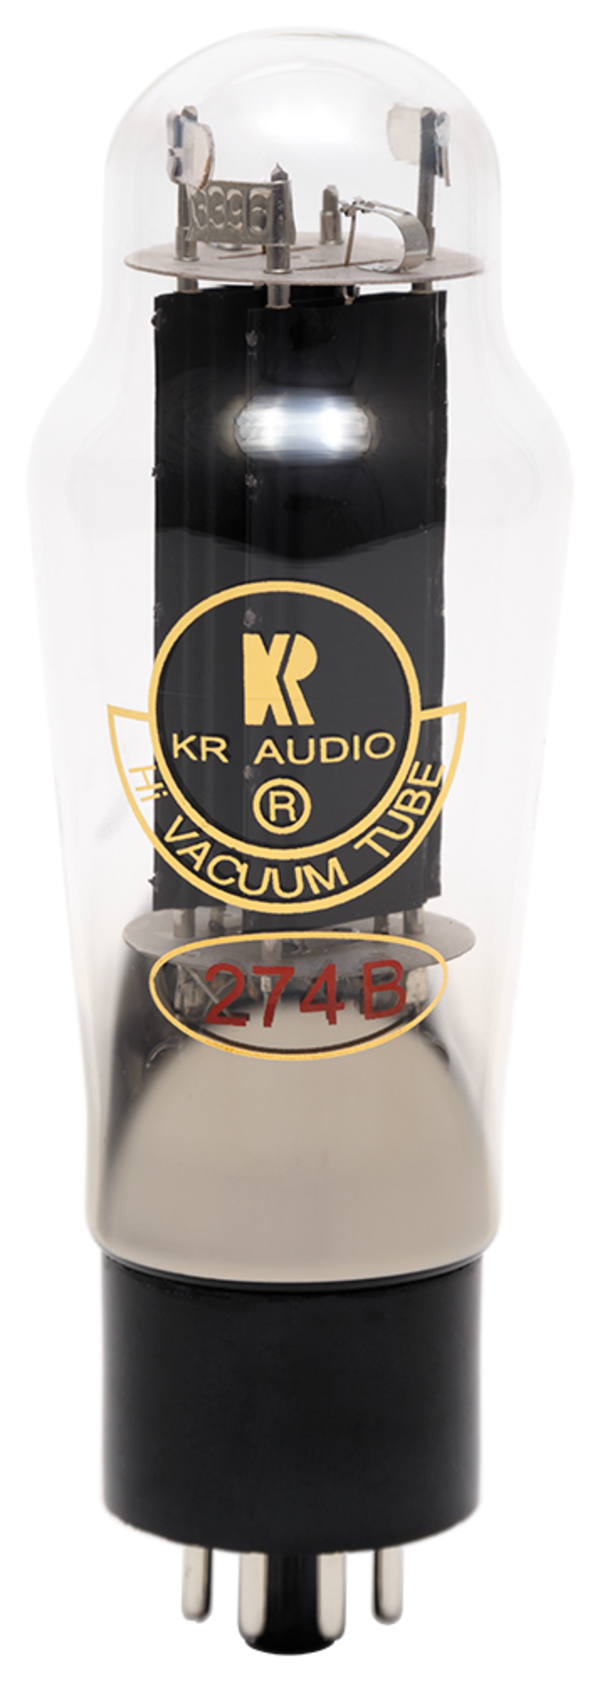 KR Audio Electronics社からKR274A、KR274B発売